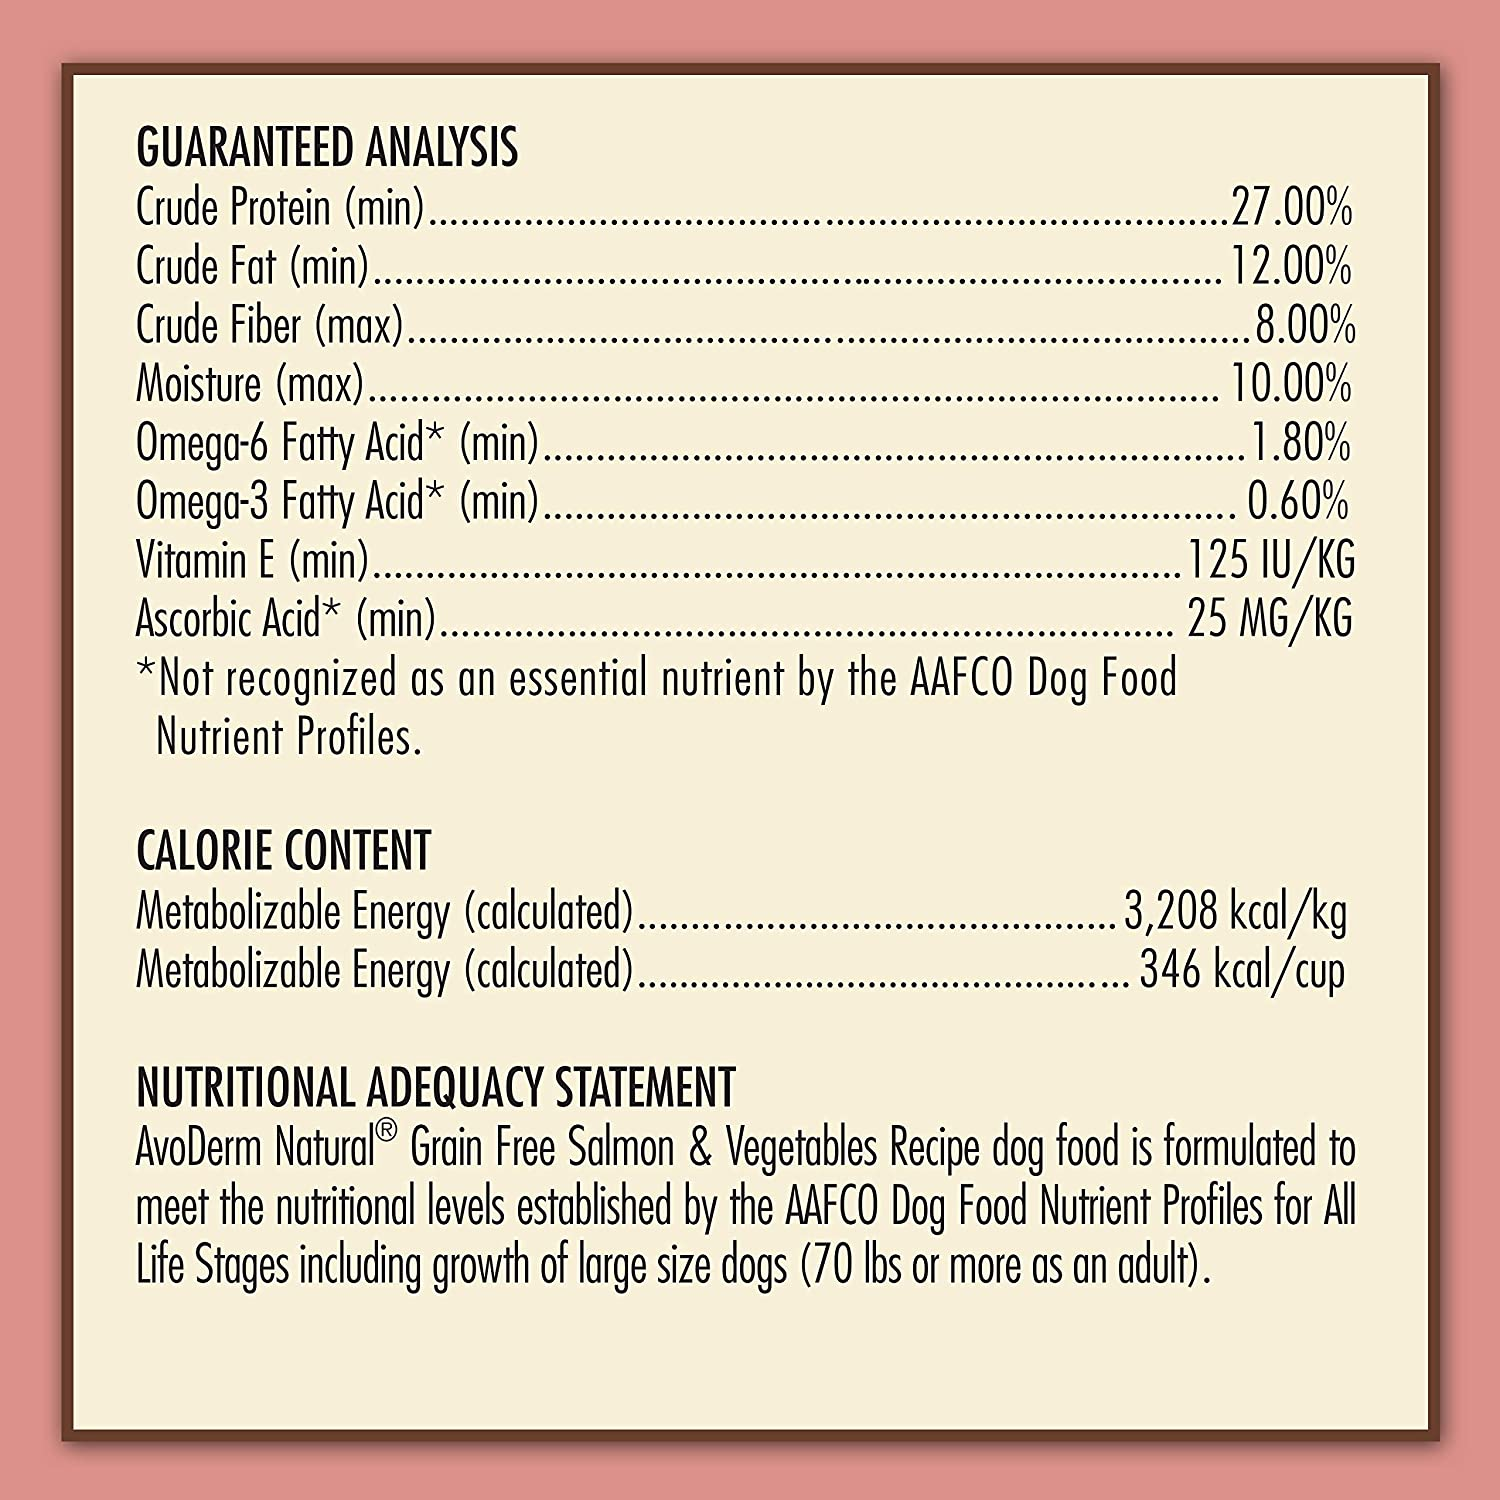 AvoDerm Natural All Life Stages Dry Wet Dog Food, Grain Free, Salmon Vegetables Recipe